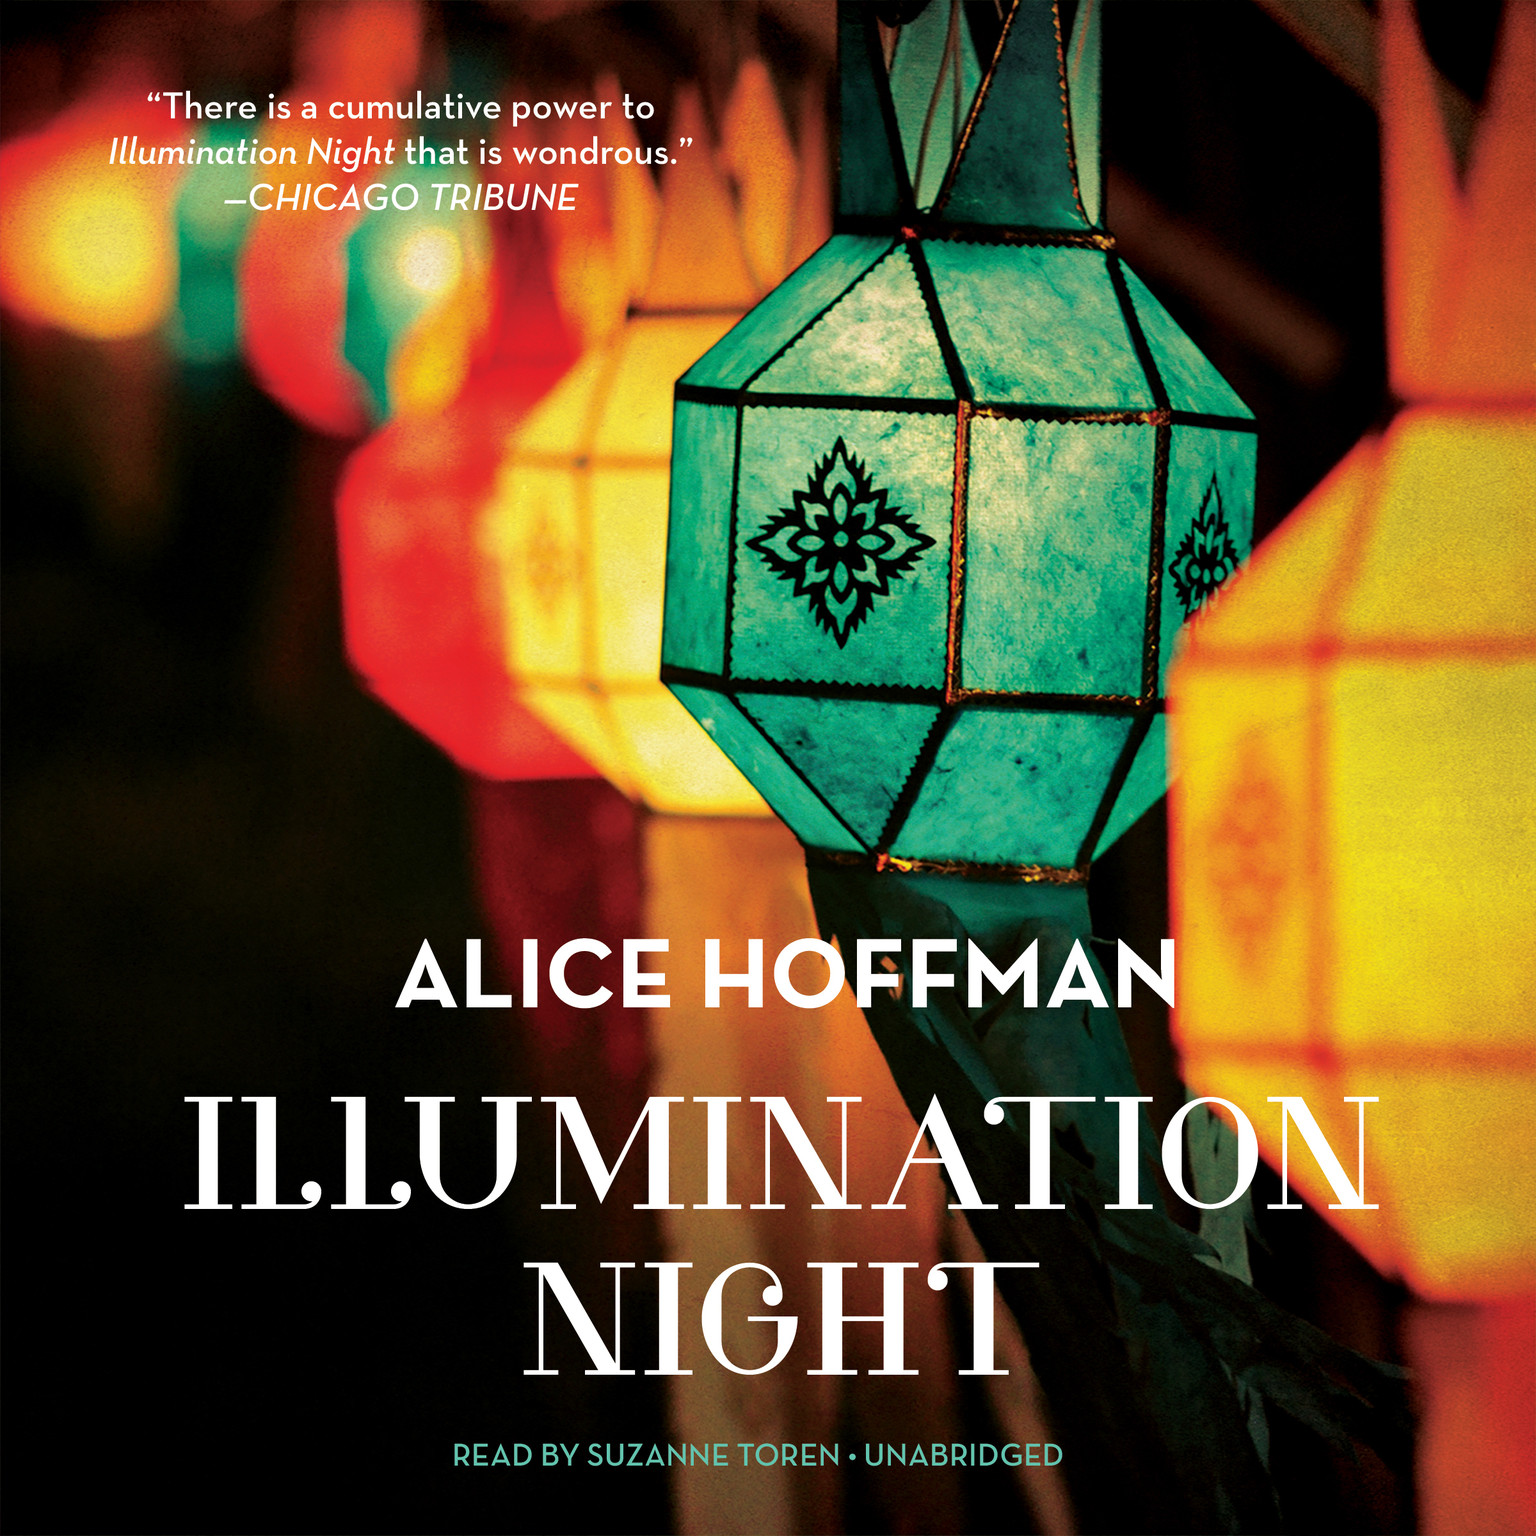 an analysis of night by alice hoffman Also trancelike and infused with magical realism, this belated sequel to green angel (2003) brings hoffman's tale of recovery from utter inner and outer devastation.